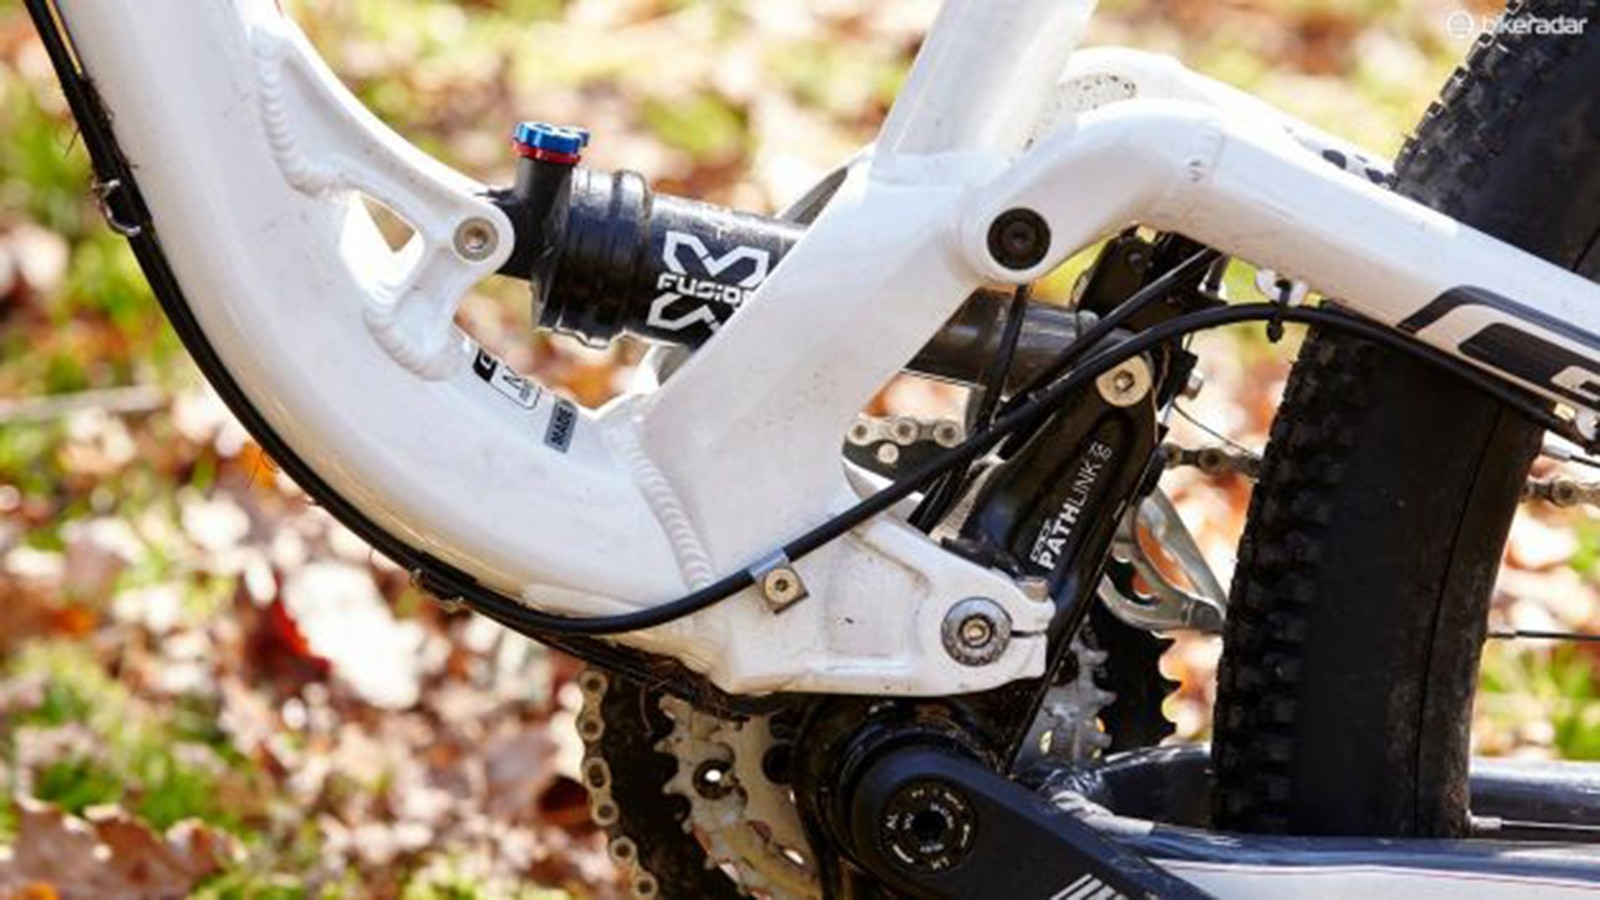 The outgoing Sensor and Force use GT's long-standing I-Drive suspension system, where the bottom bracket moves in-between the mainframe and the swingarm